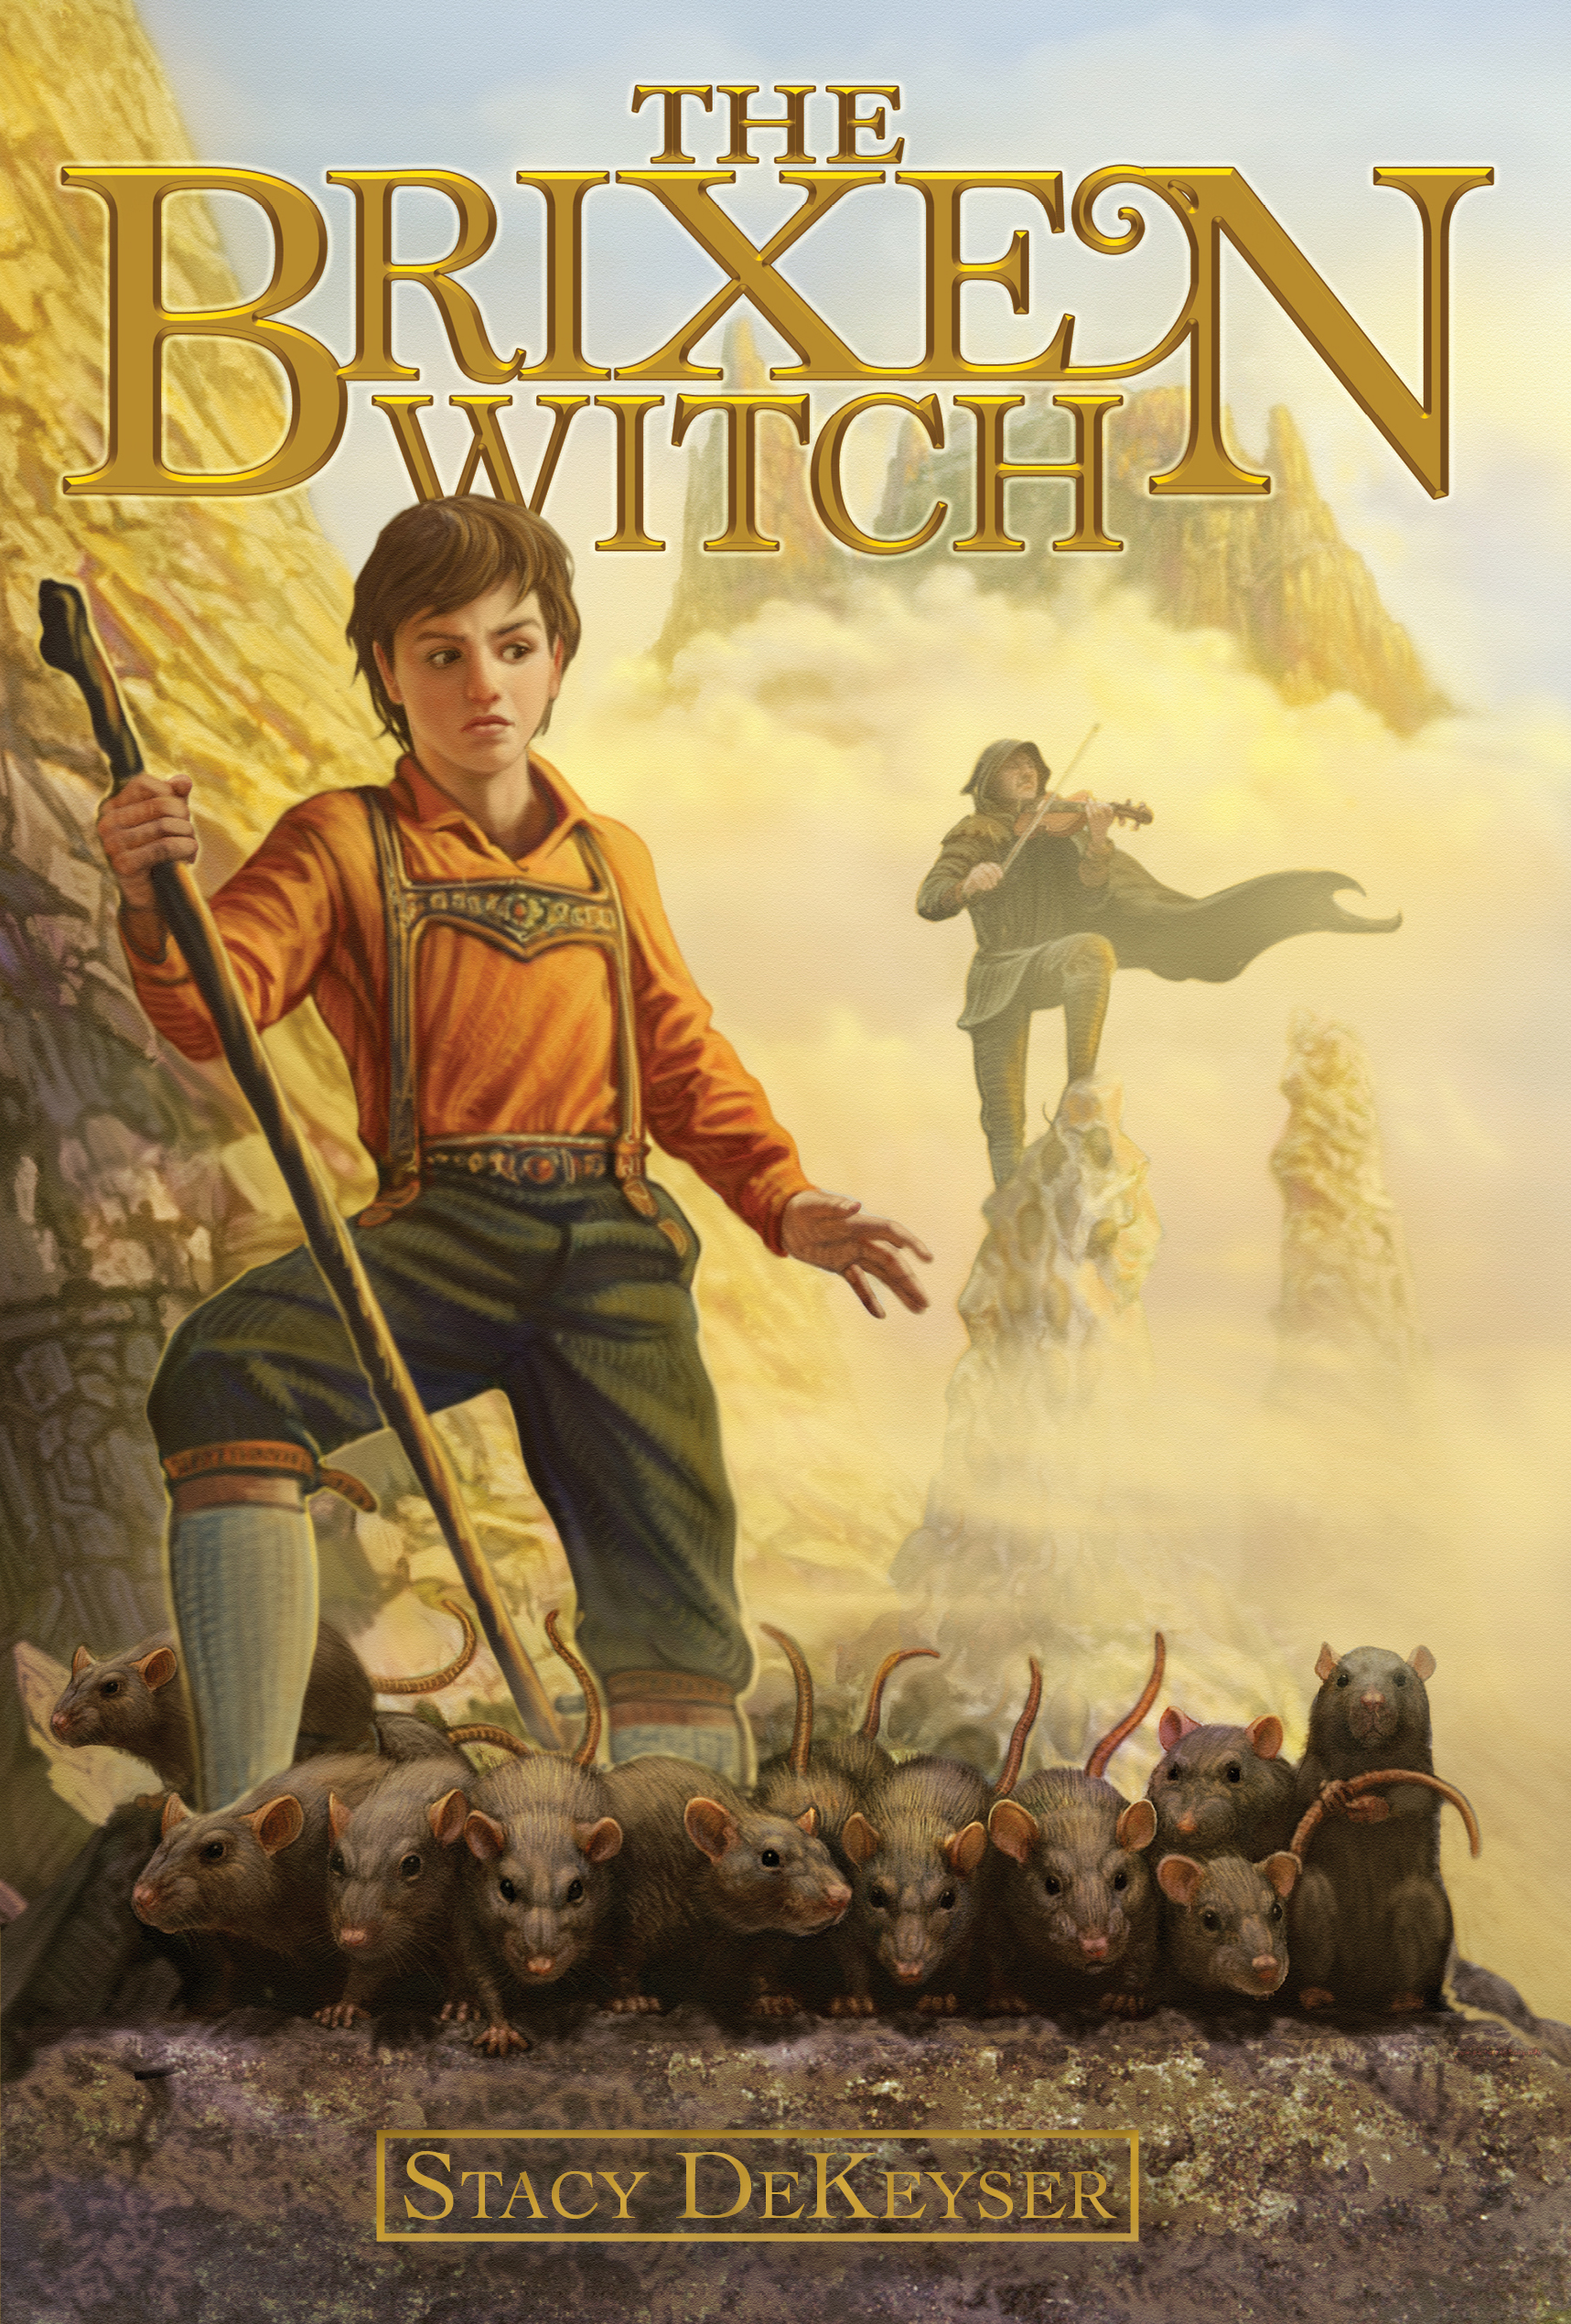 the brixen witch book by stacy dekeyser john nickle